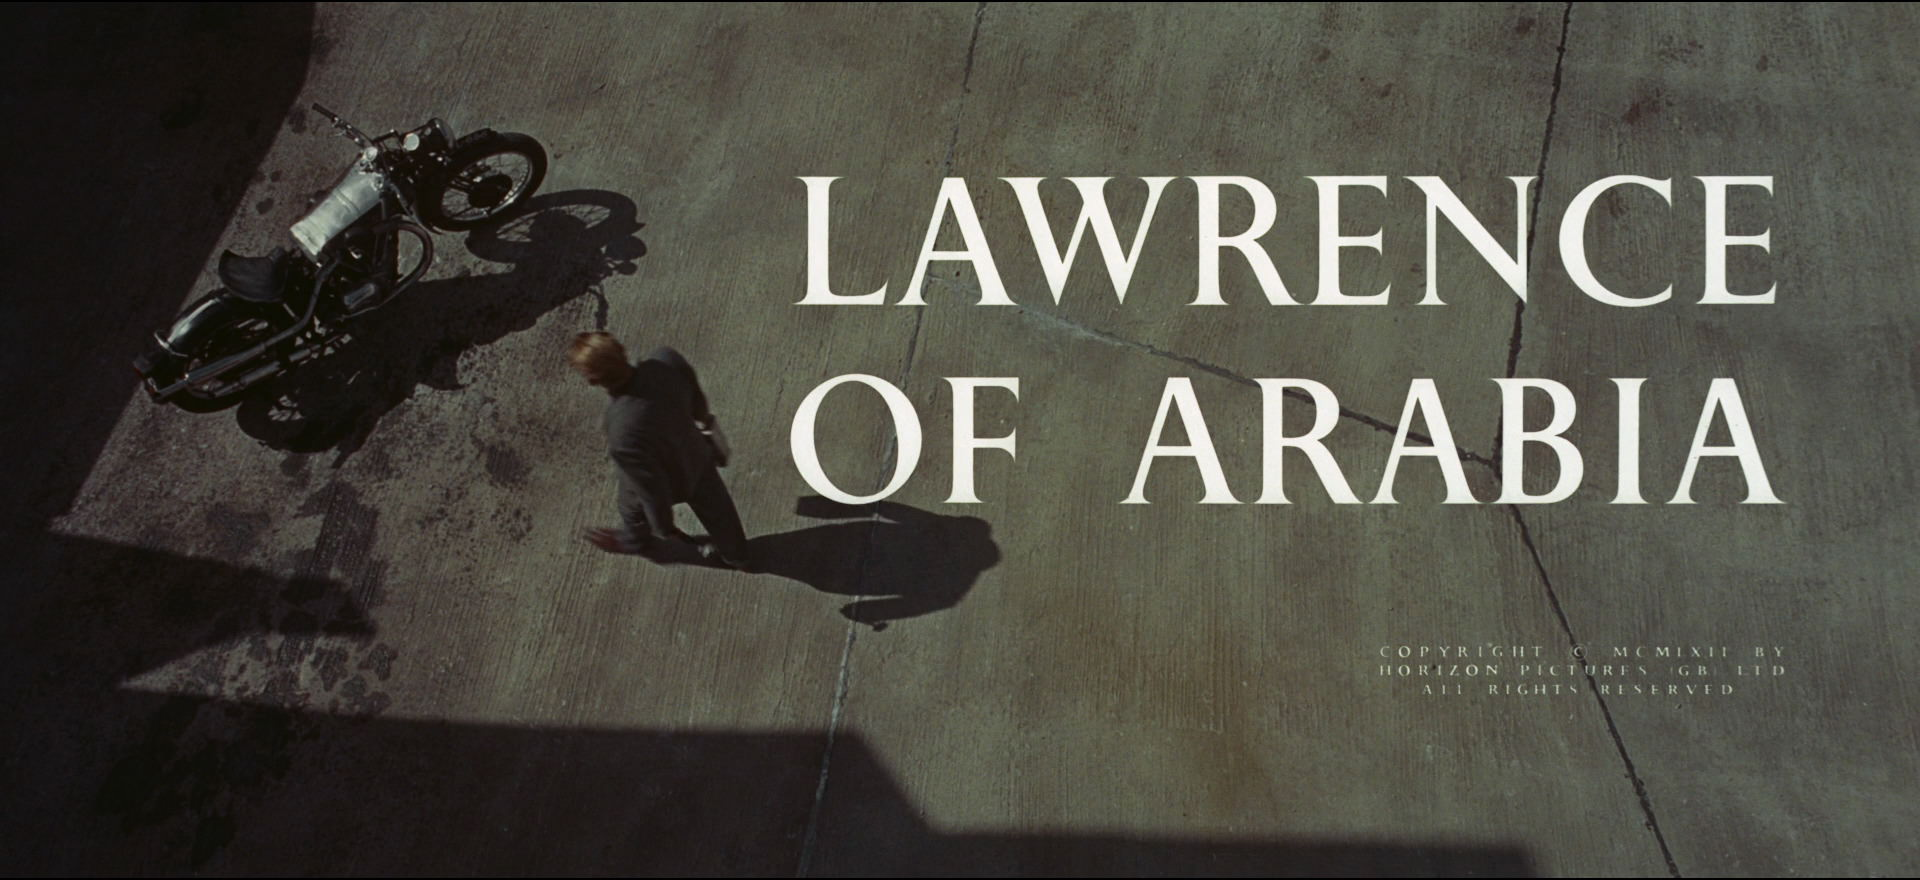 lawrence of arabia full movie in hindi download 720p